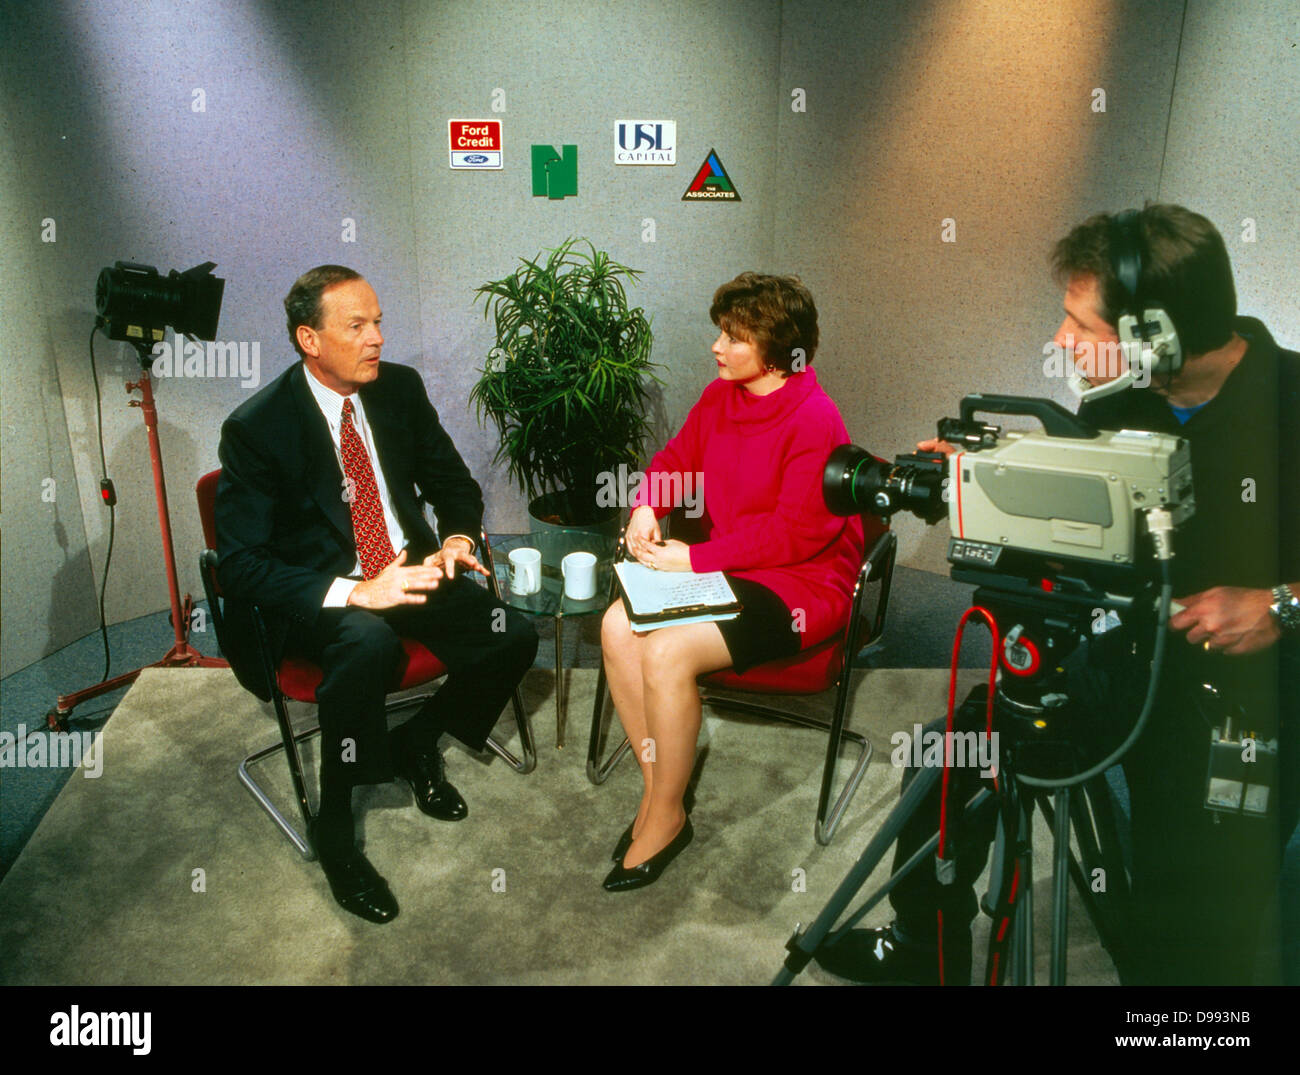 American, Television studio showing an interview in the 1970's - Stock Image